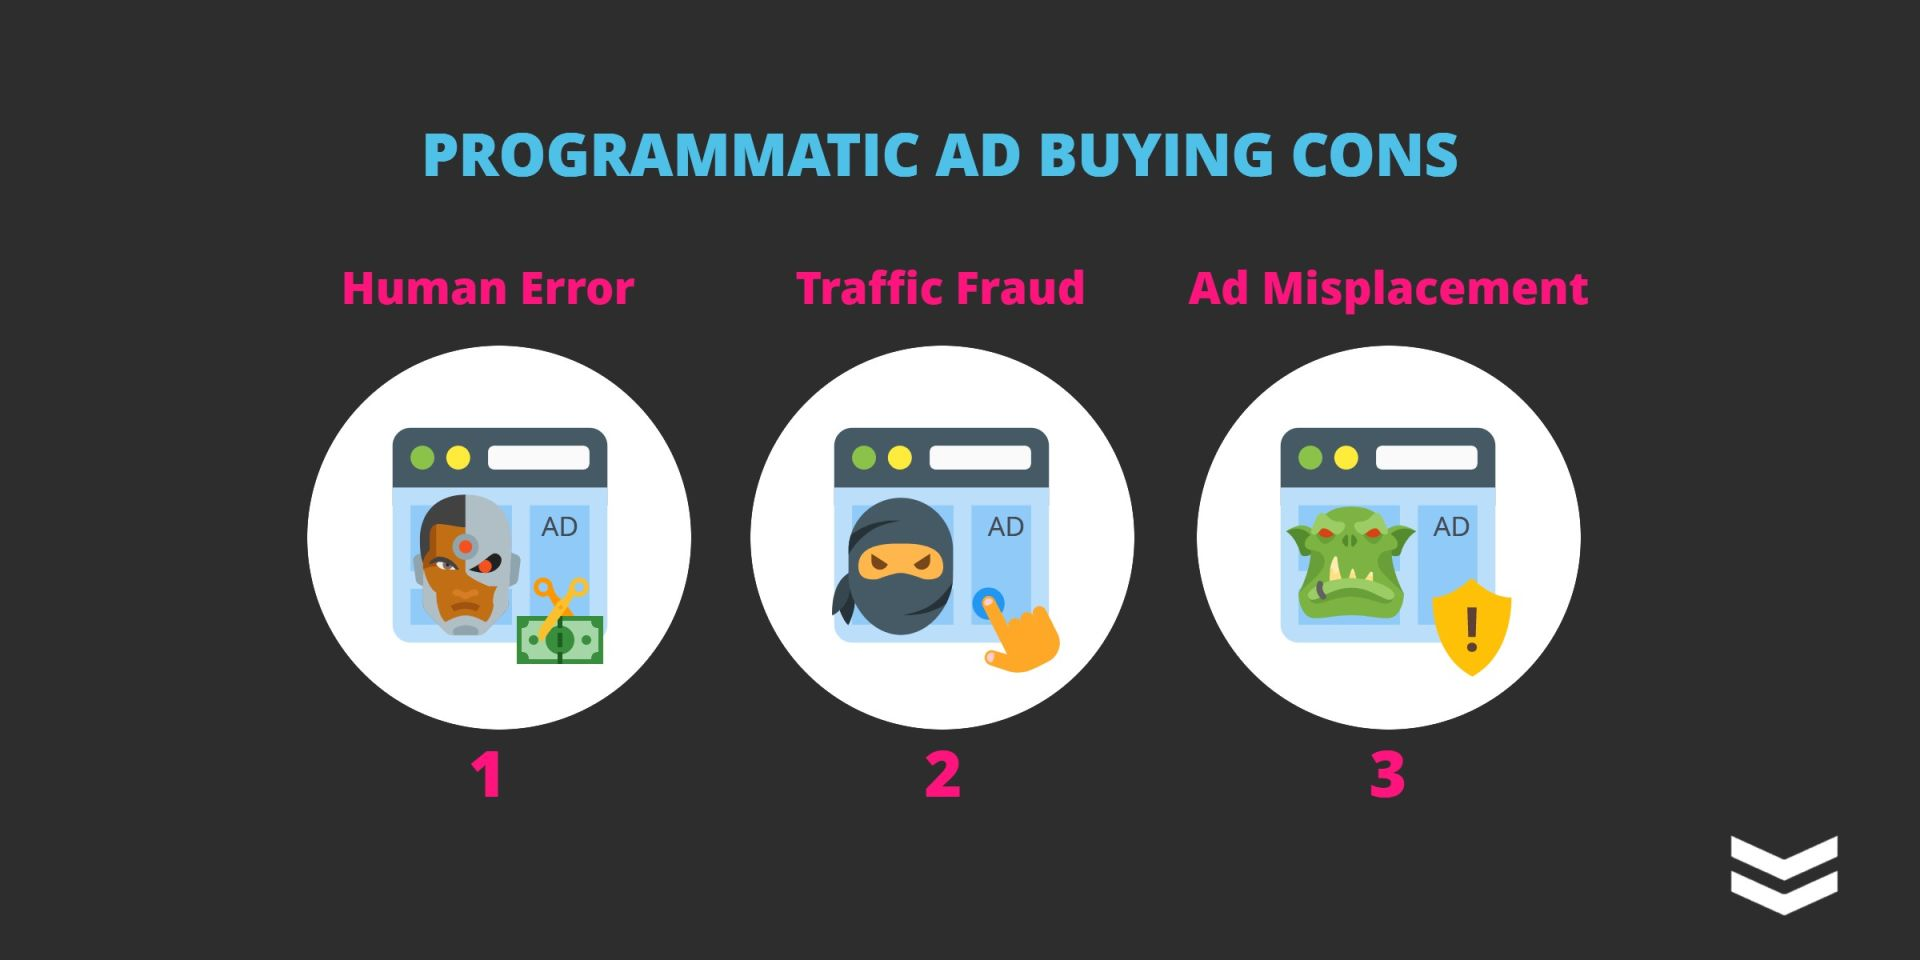 pros and cons of programmatic graphic cons of programmatic